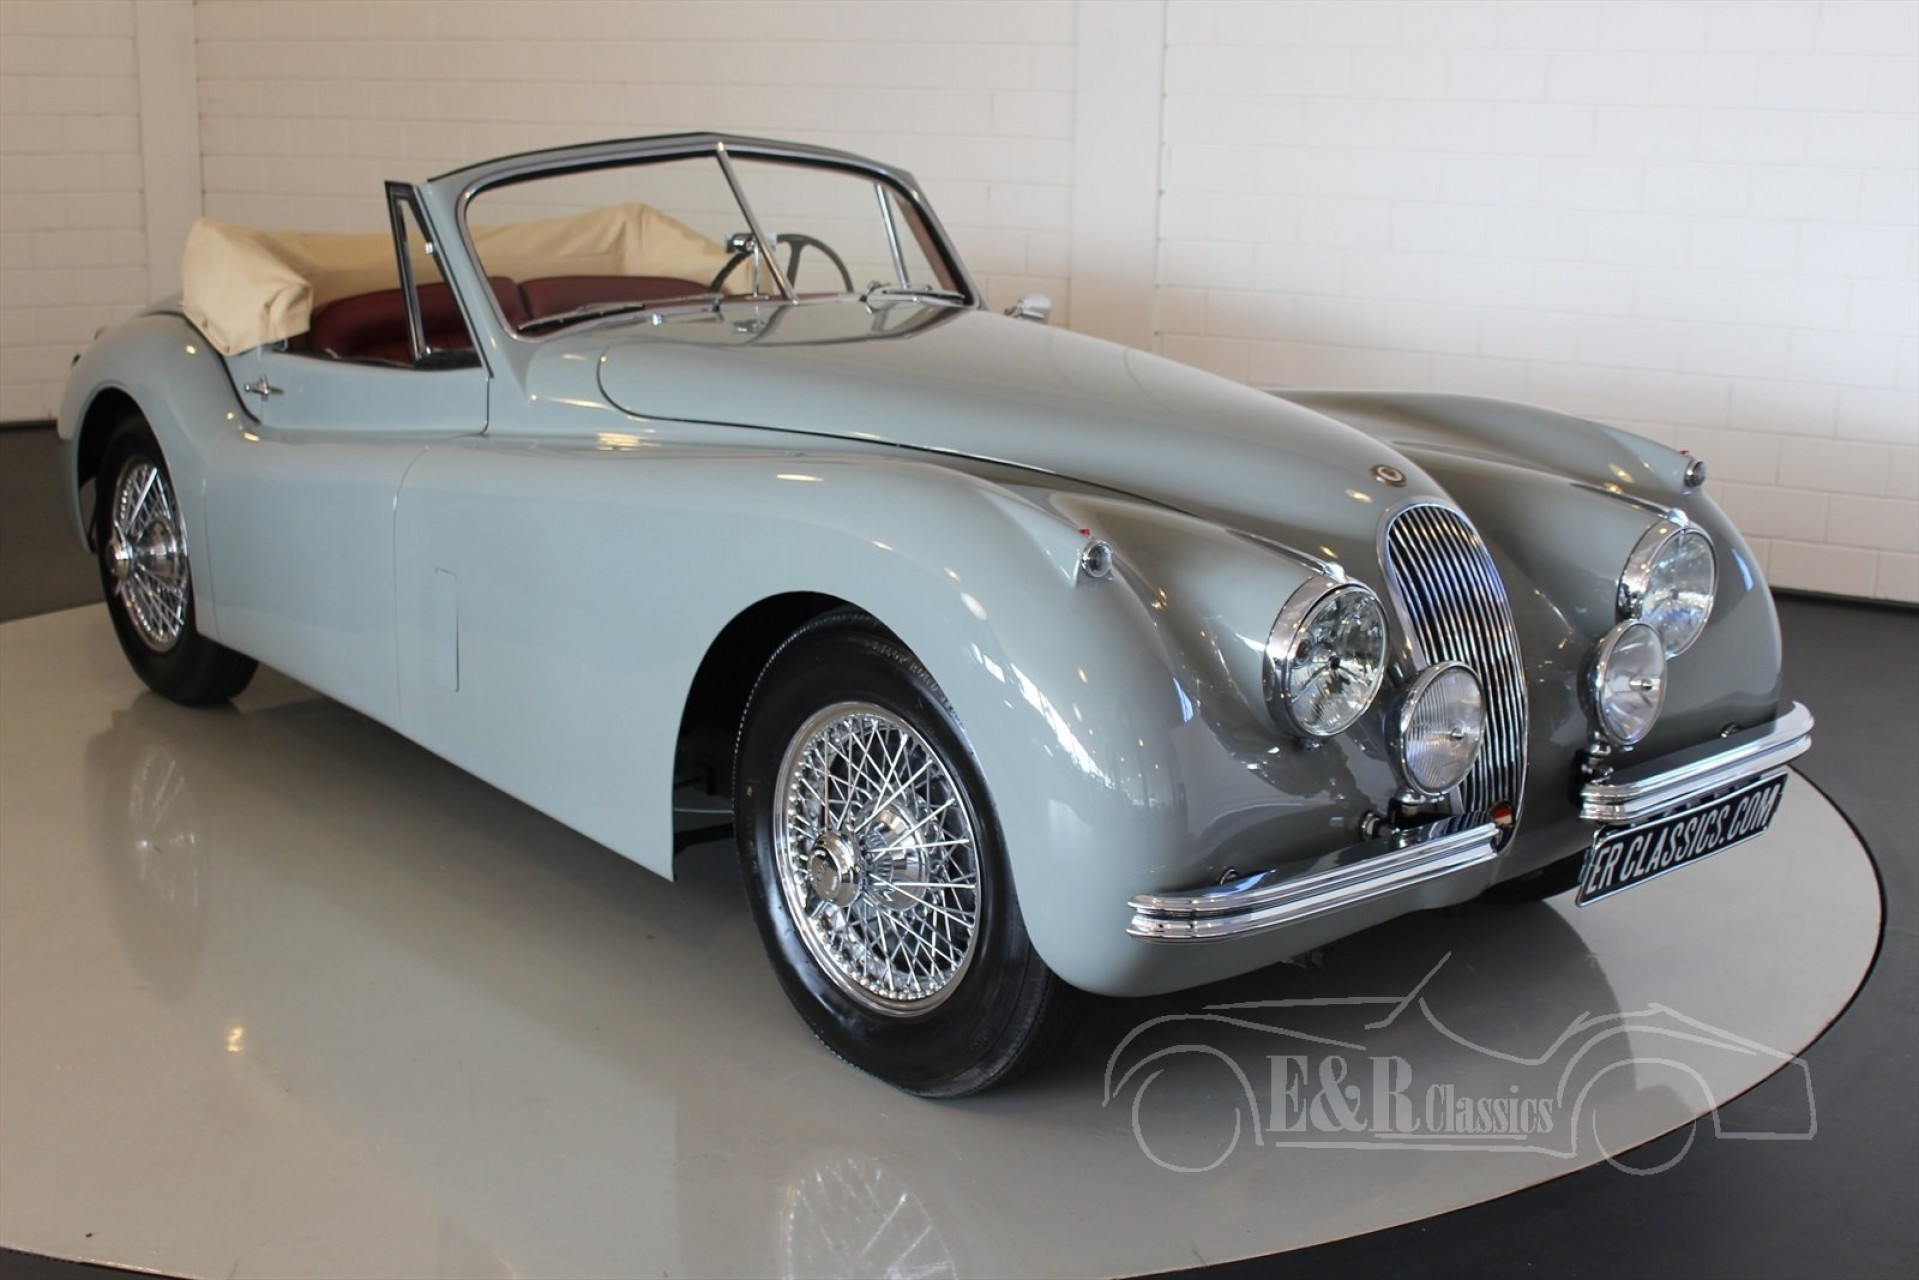 jaguar xk 120 dhc 1954 for sale at erclassics. Black Bedroom Furniture Sets. Home Design Ideas